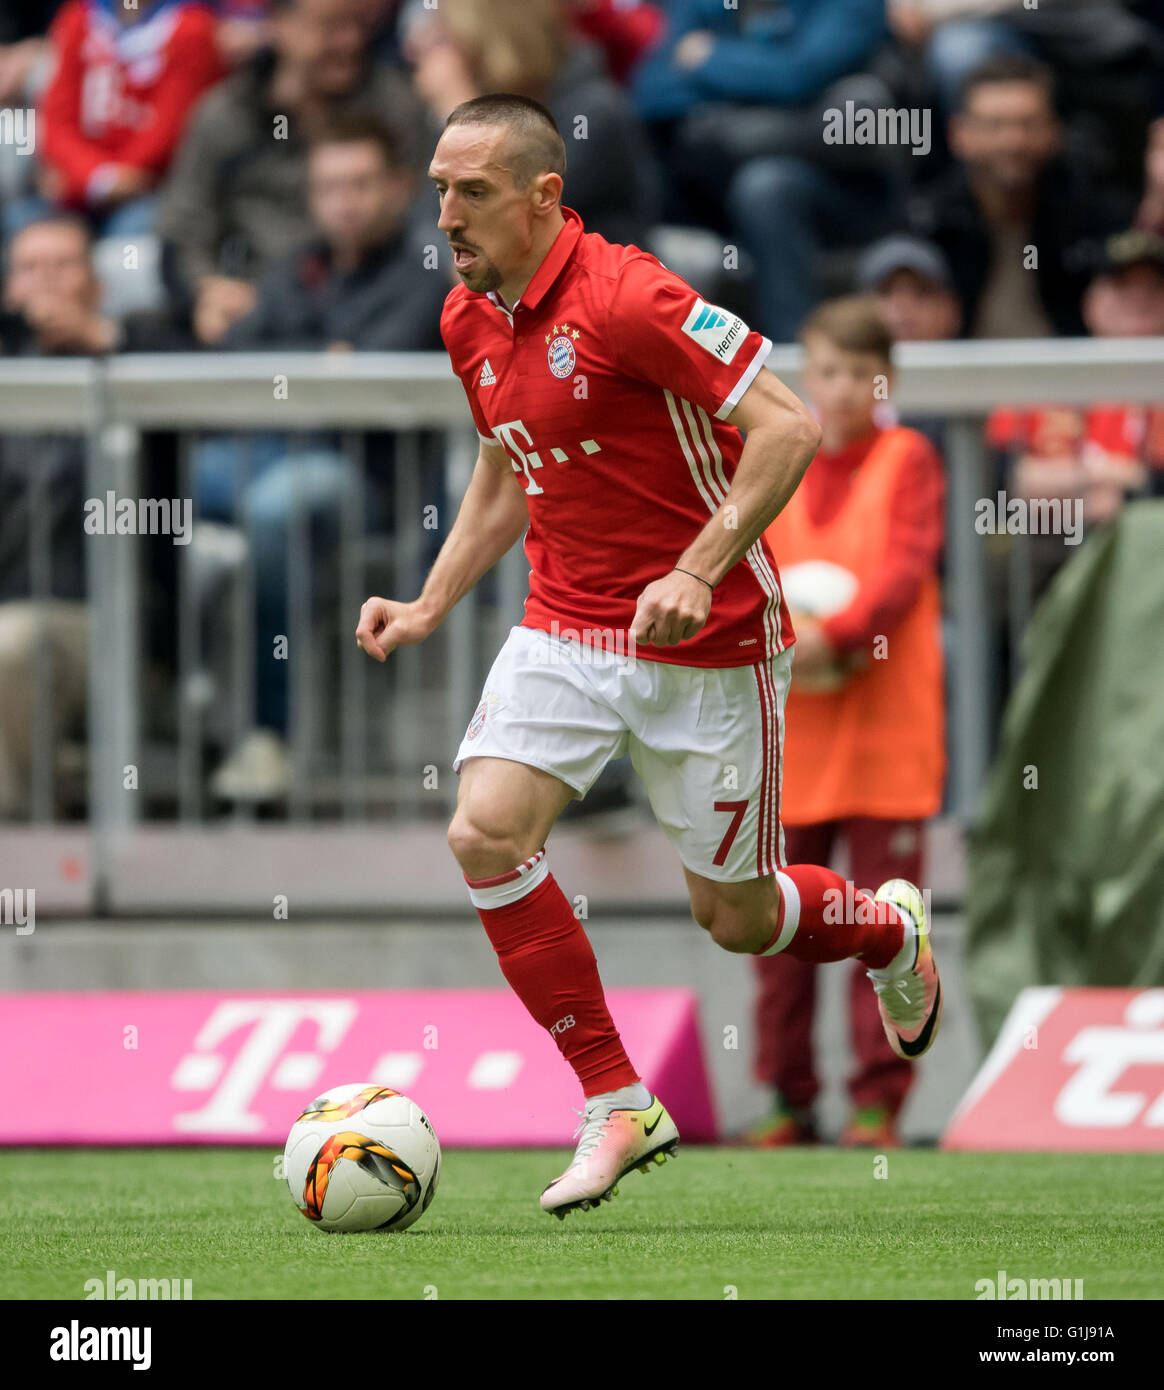 Munich s Franck Ribery in action during the German Bundesliga